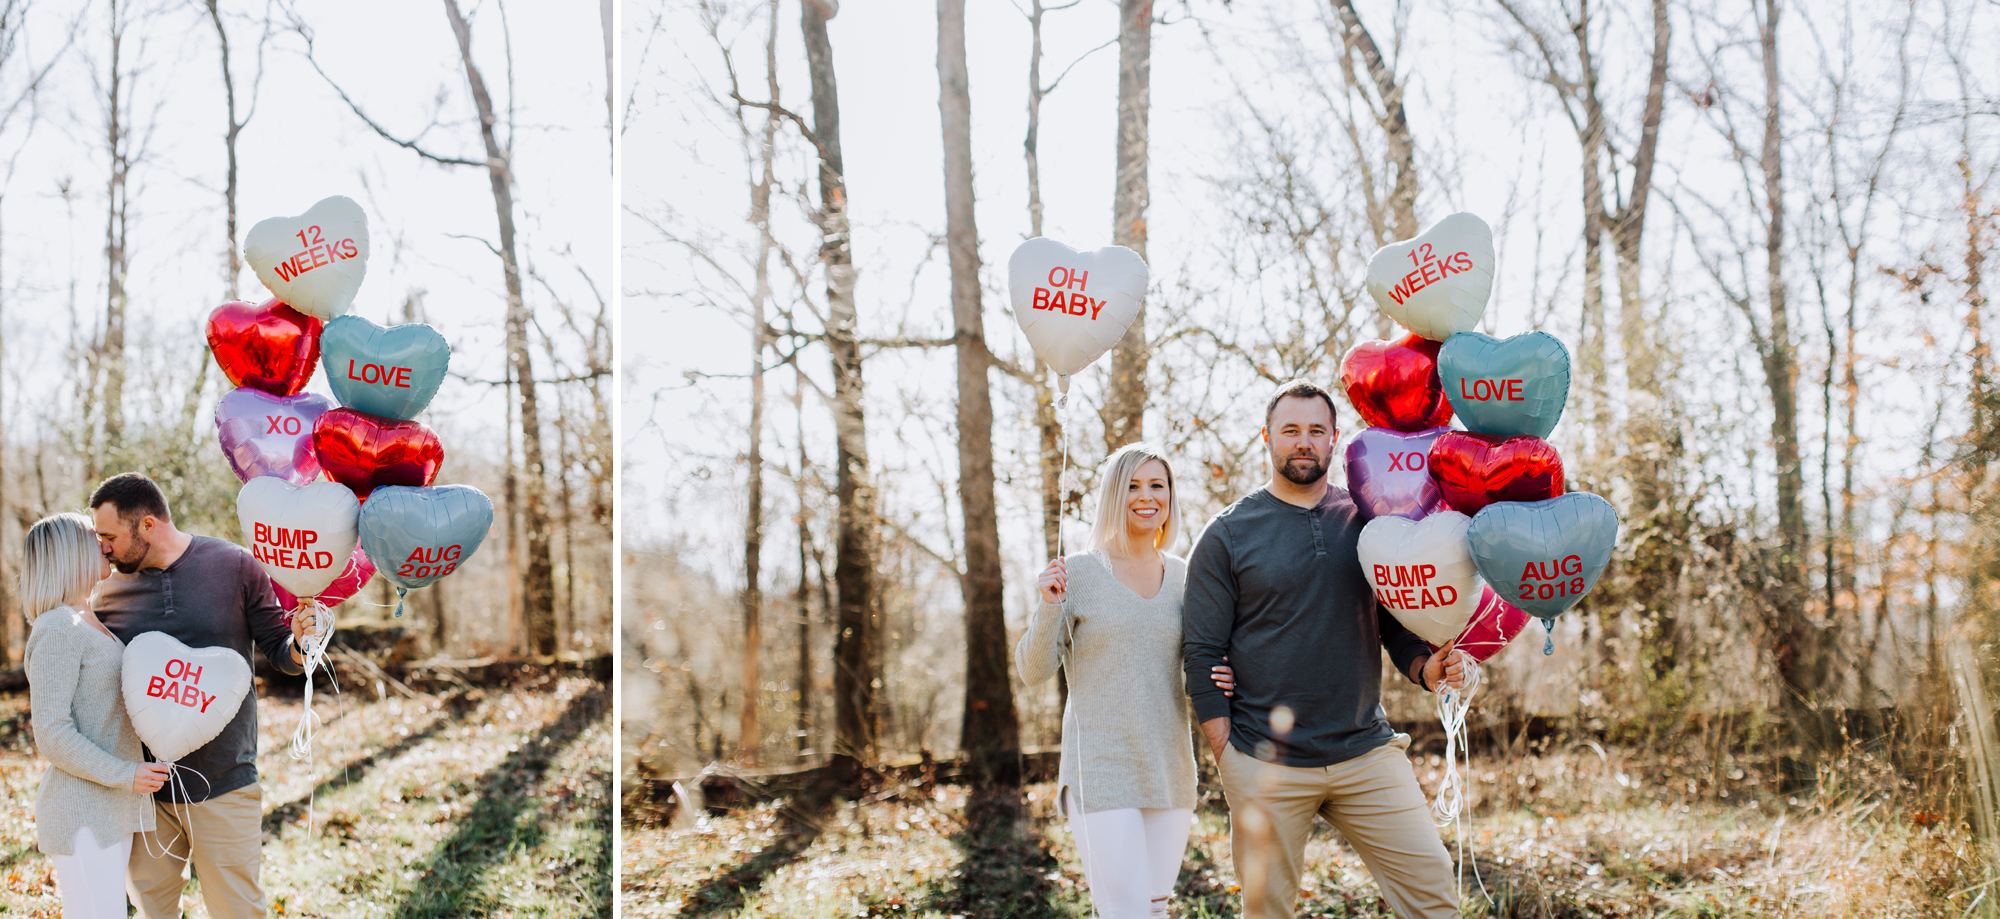 004-pregnancy-announcement-with-balloons.jpg